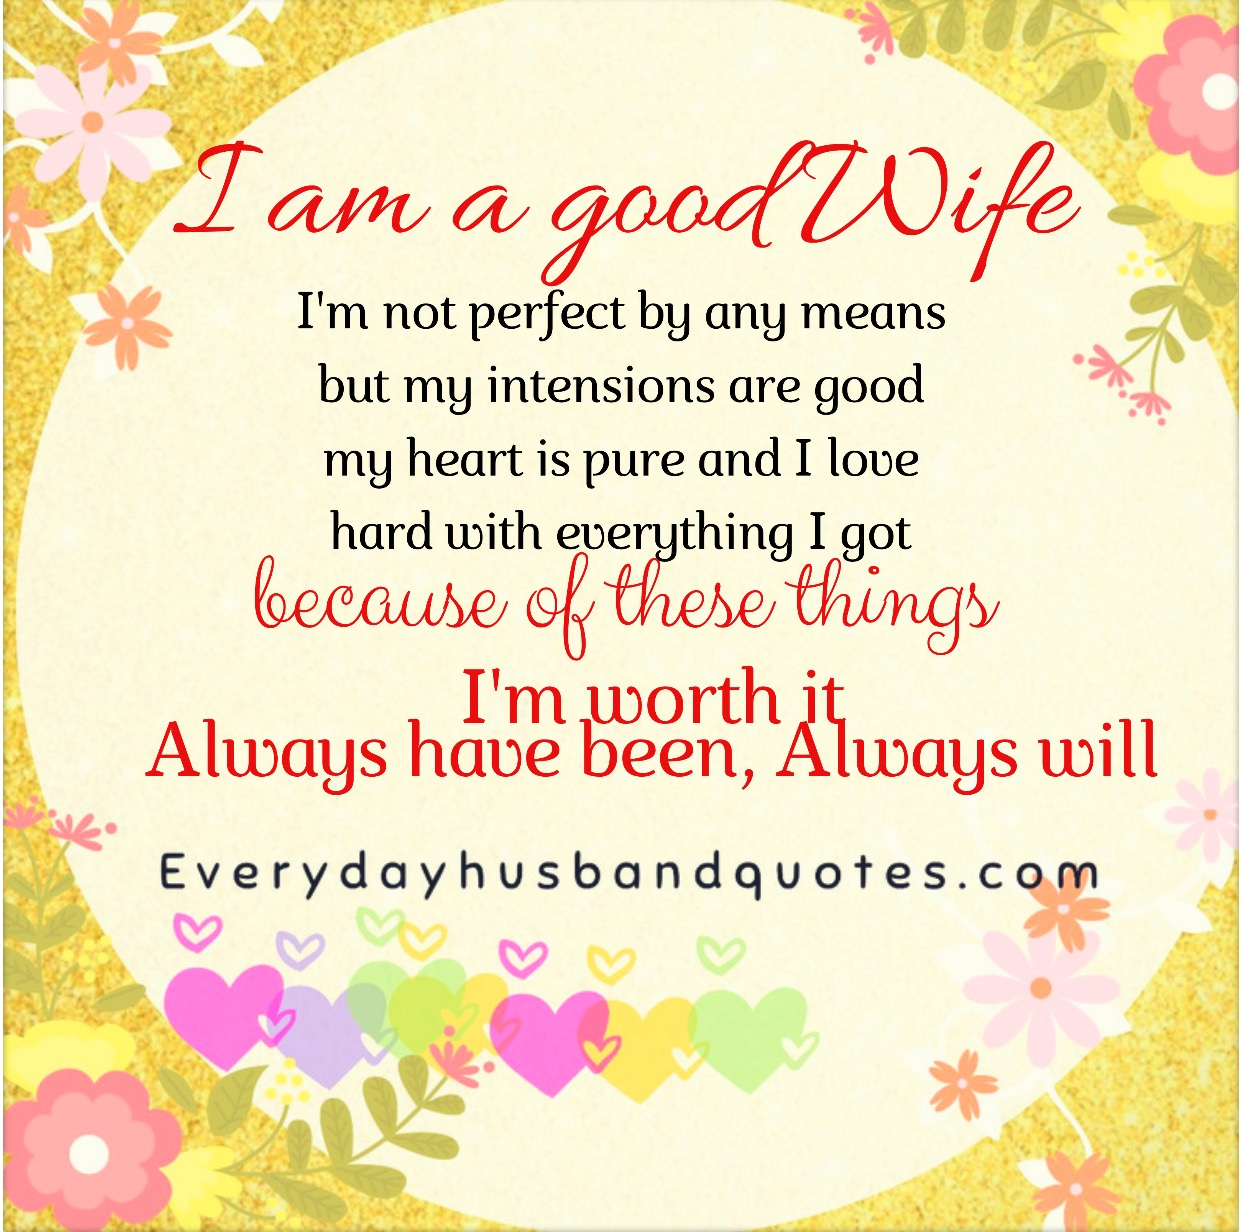 Everyday Husband Quotes.com...Yes! Marriage Still Works: I ...